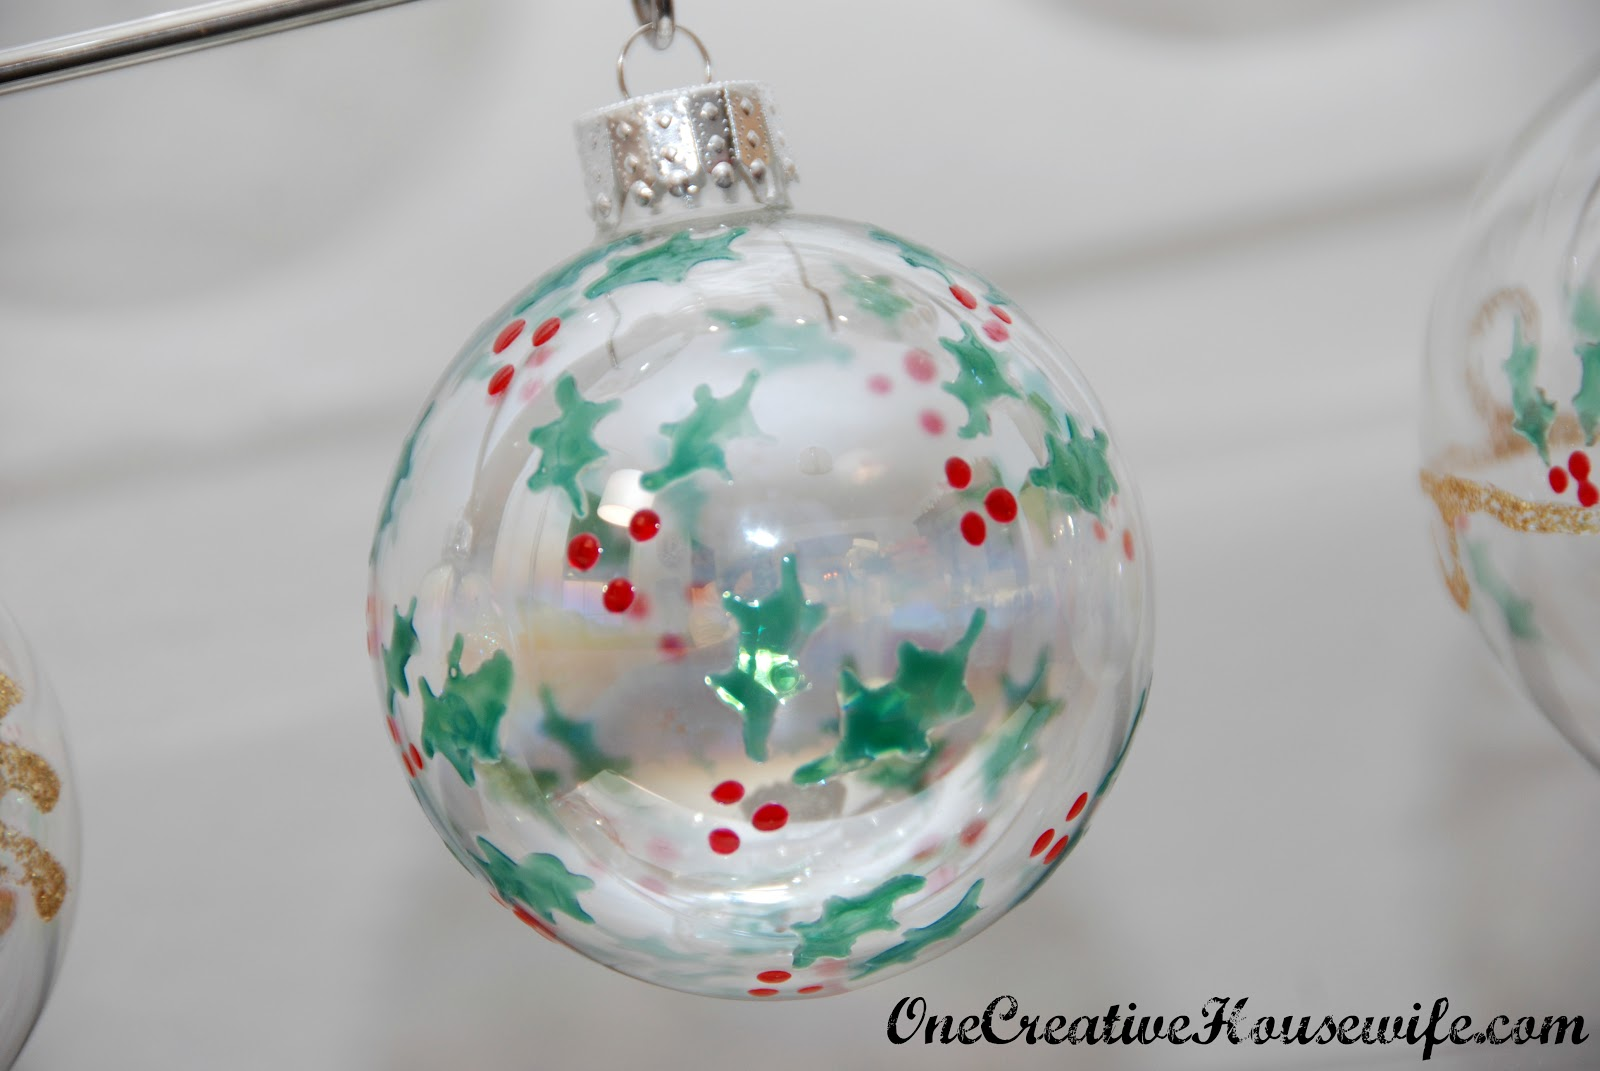 Acrylic clear ornaments - The Gold Glitter On This Ball Is Glitter Glue And The Gold Circles Are Gold Acrylic Paint